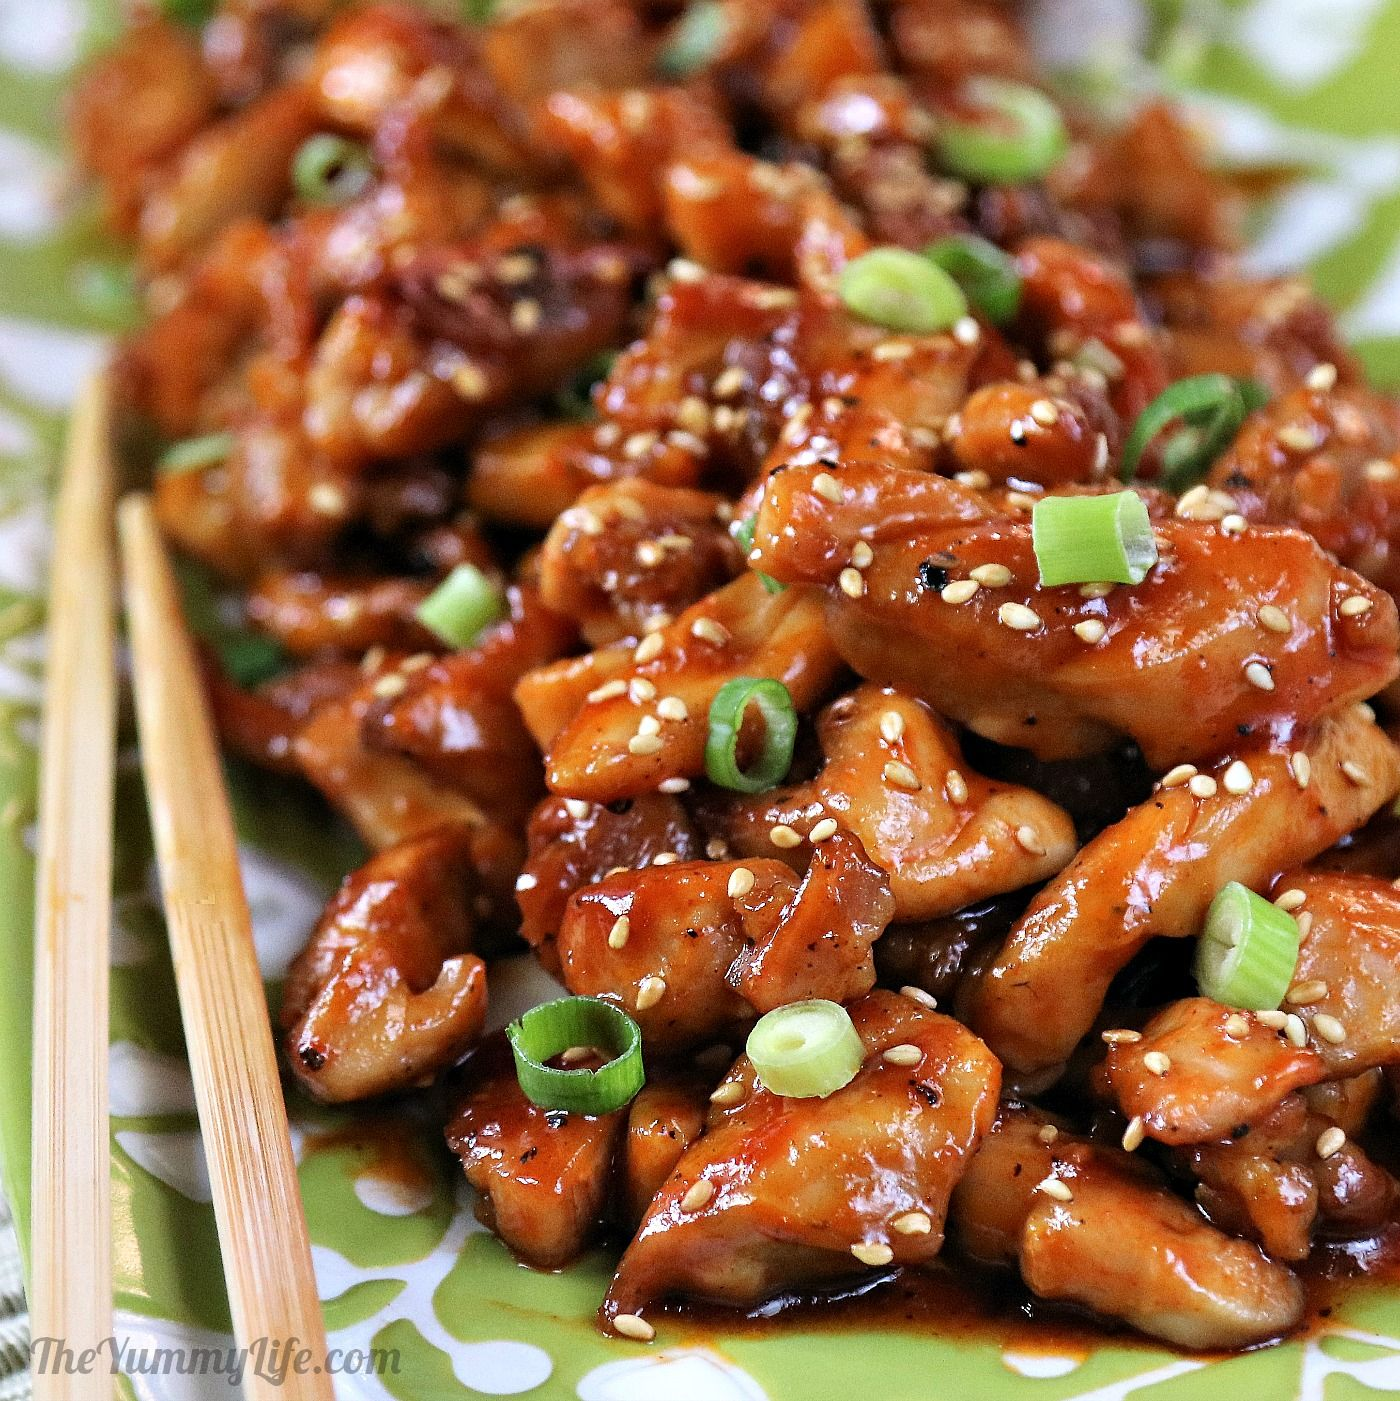 Easy Korean Sticky Chicken - This sweet and spicy recipe is ready in under 30 minutes.